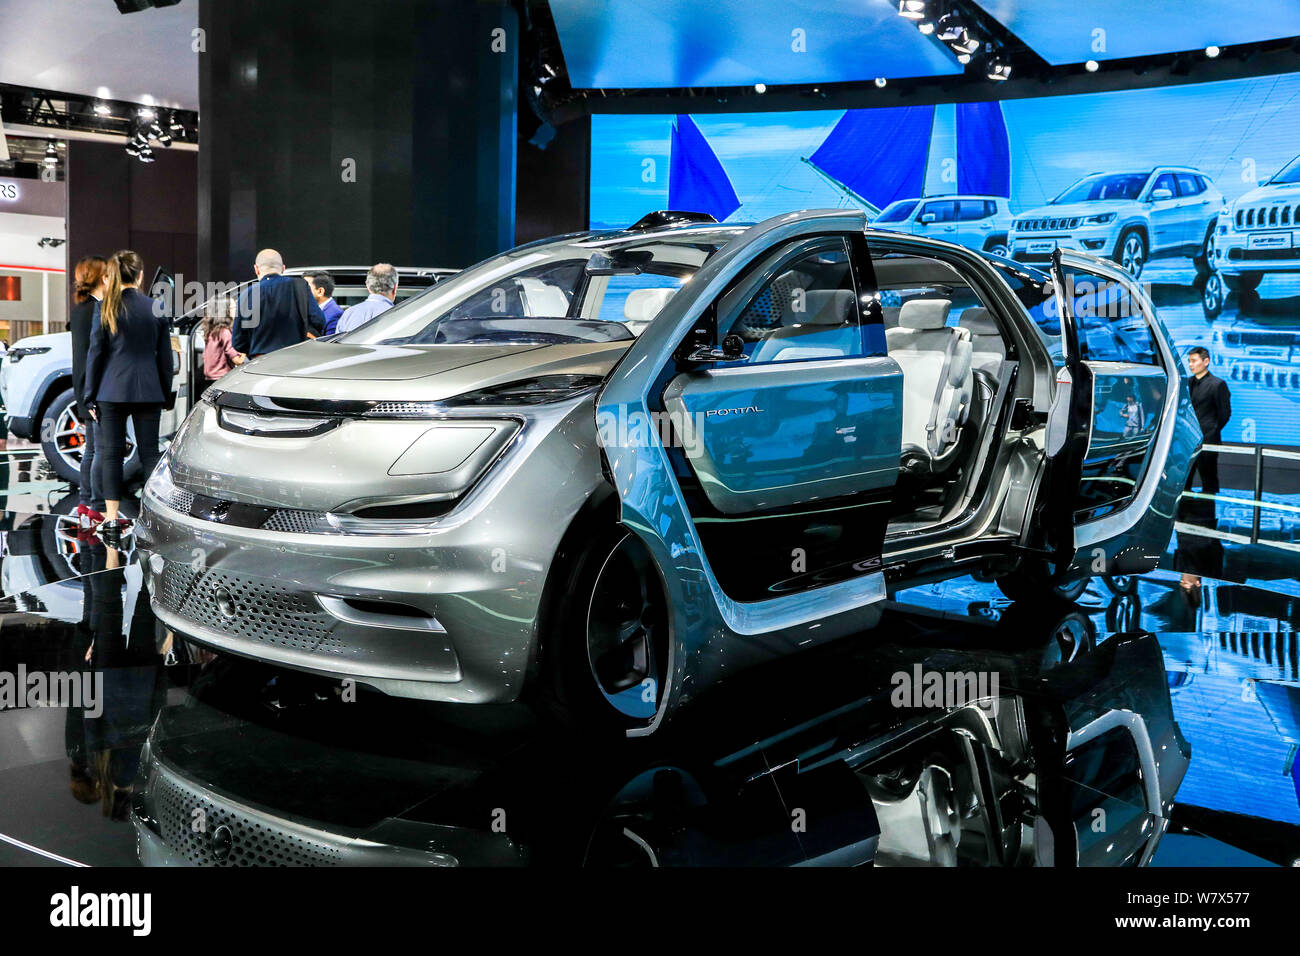 A GAC Fiat Chrysler Automobiles Portal Concept car is on display during the 17th Shanghai International Automobile Industry Exhibition, also known as Stock Photo